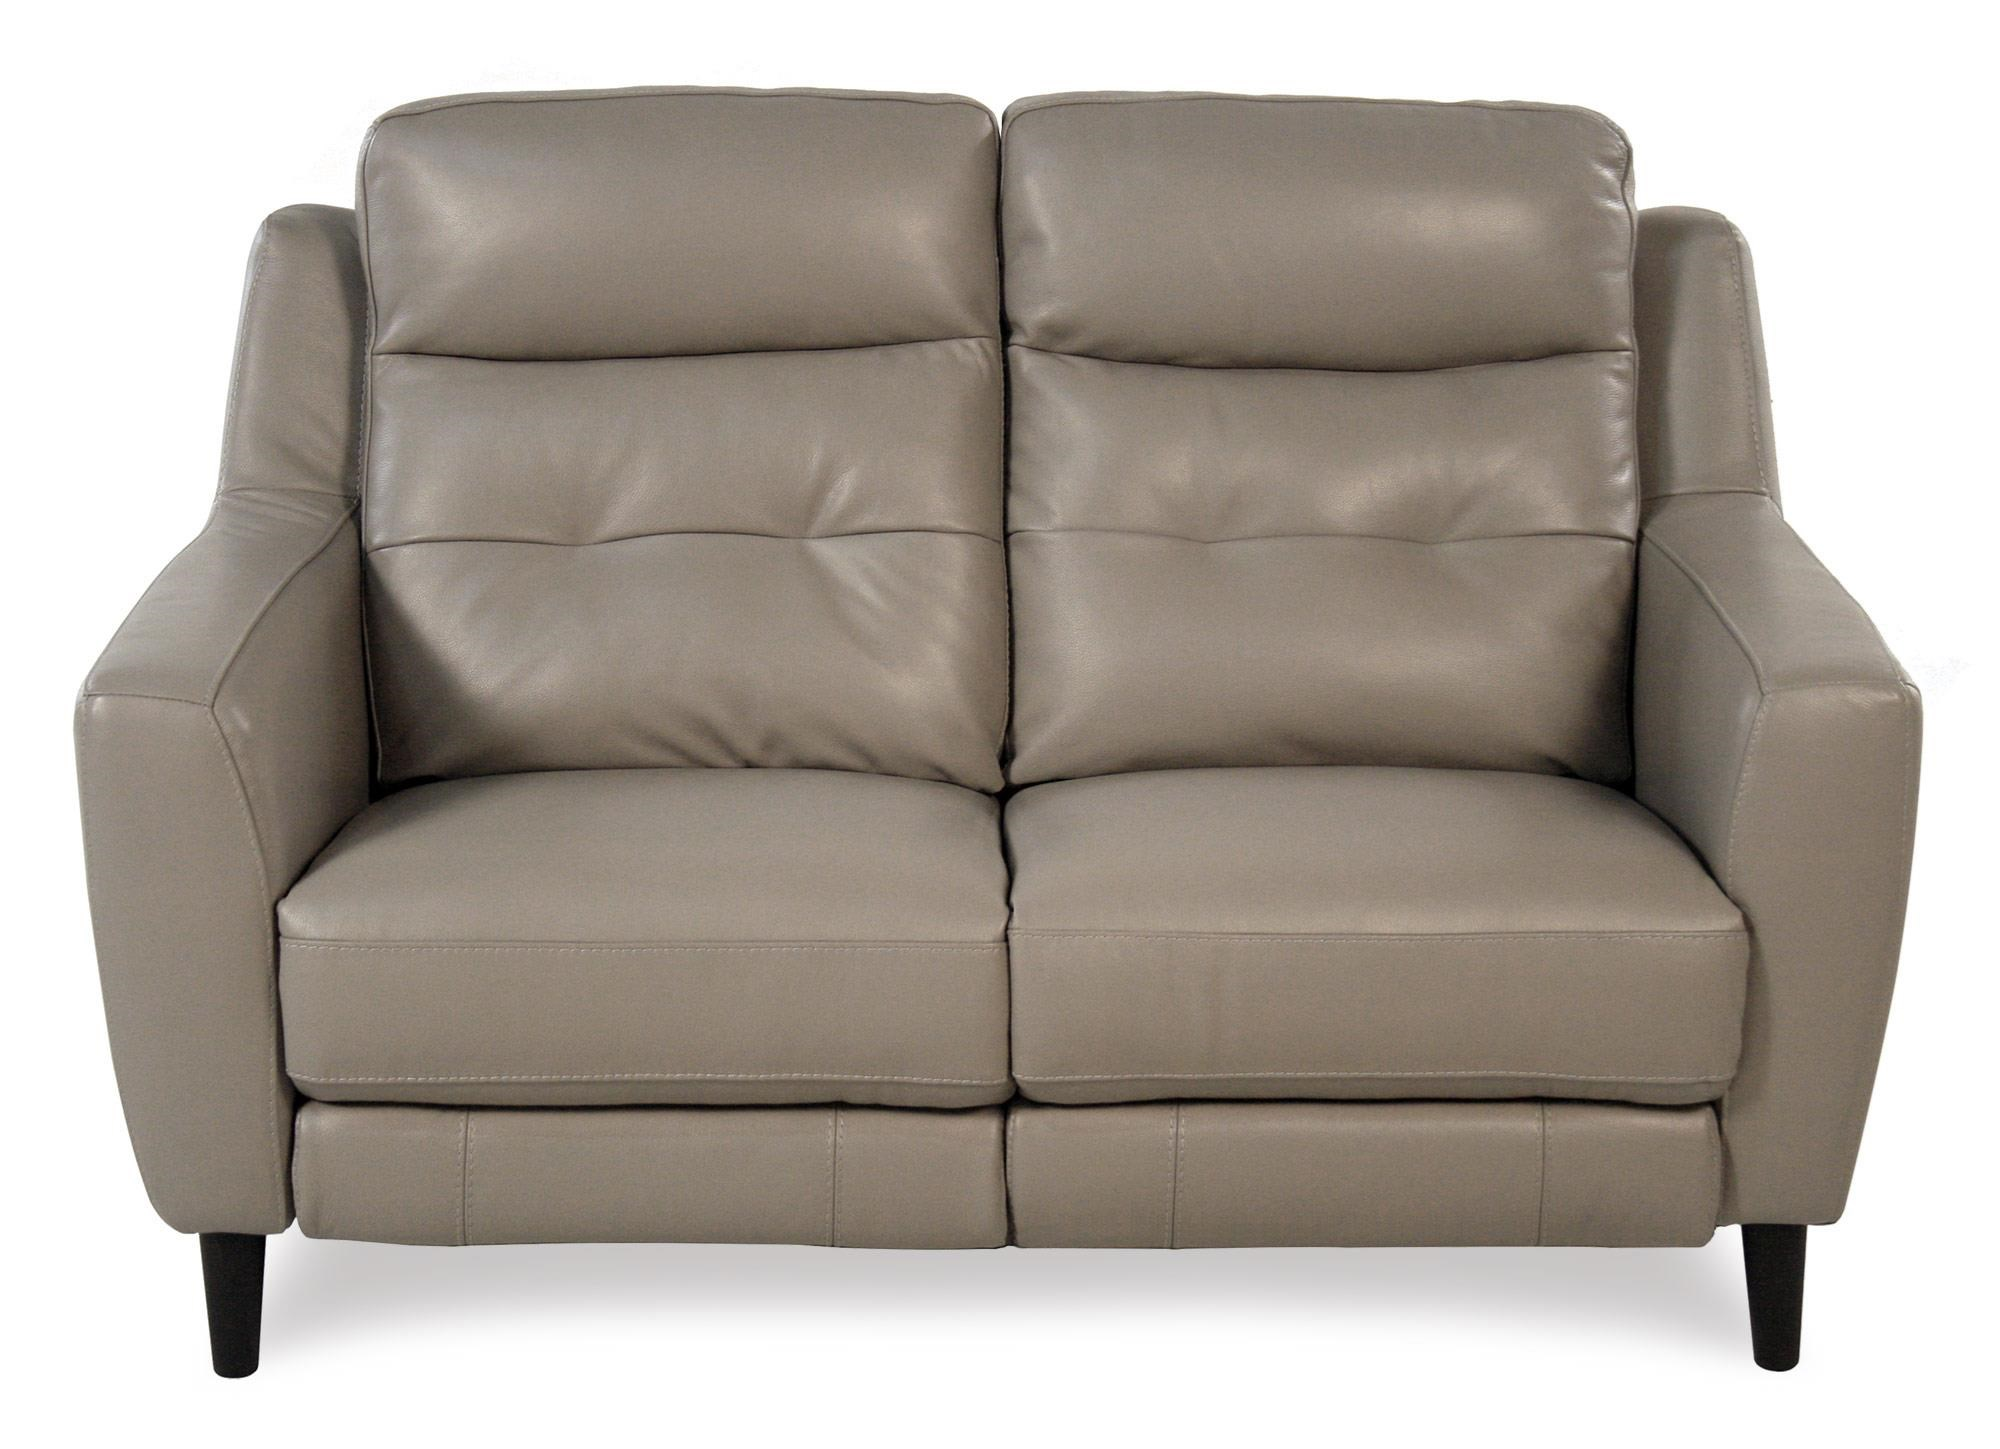 Giovani Fusion Power Reclining Leather Loveseat - Item Number: 10859-2S2UA-NC282